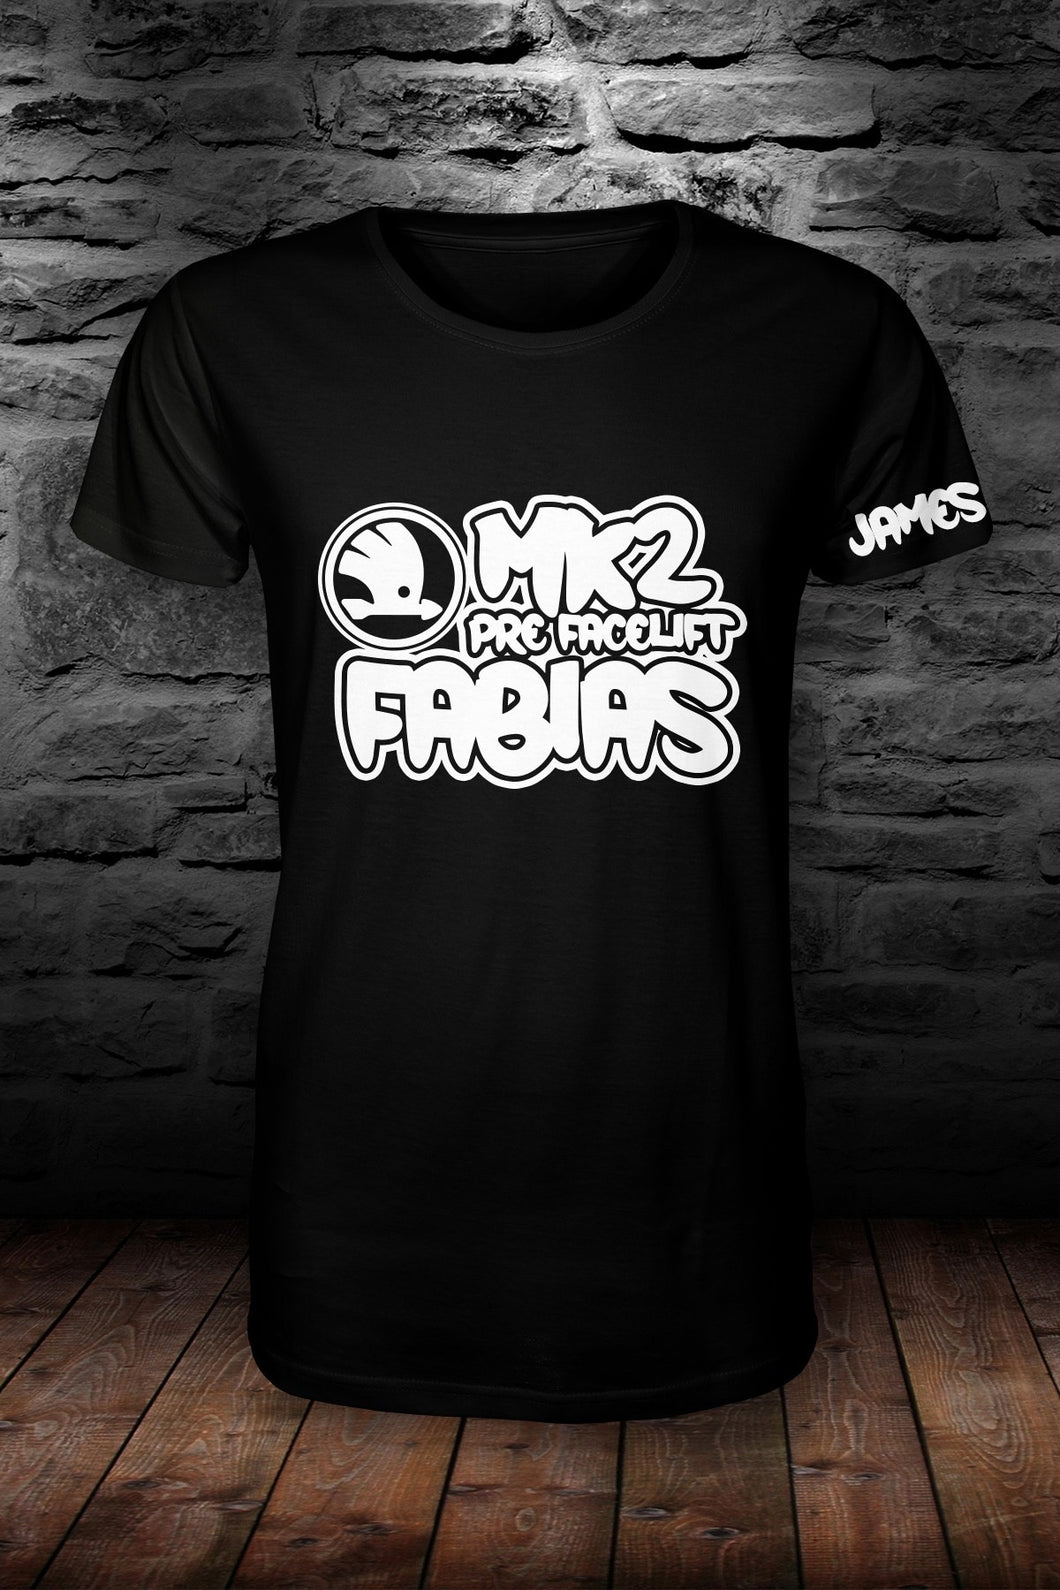 Mk2 Fabias t shirt Black & white (personalised with your name!)